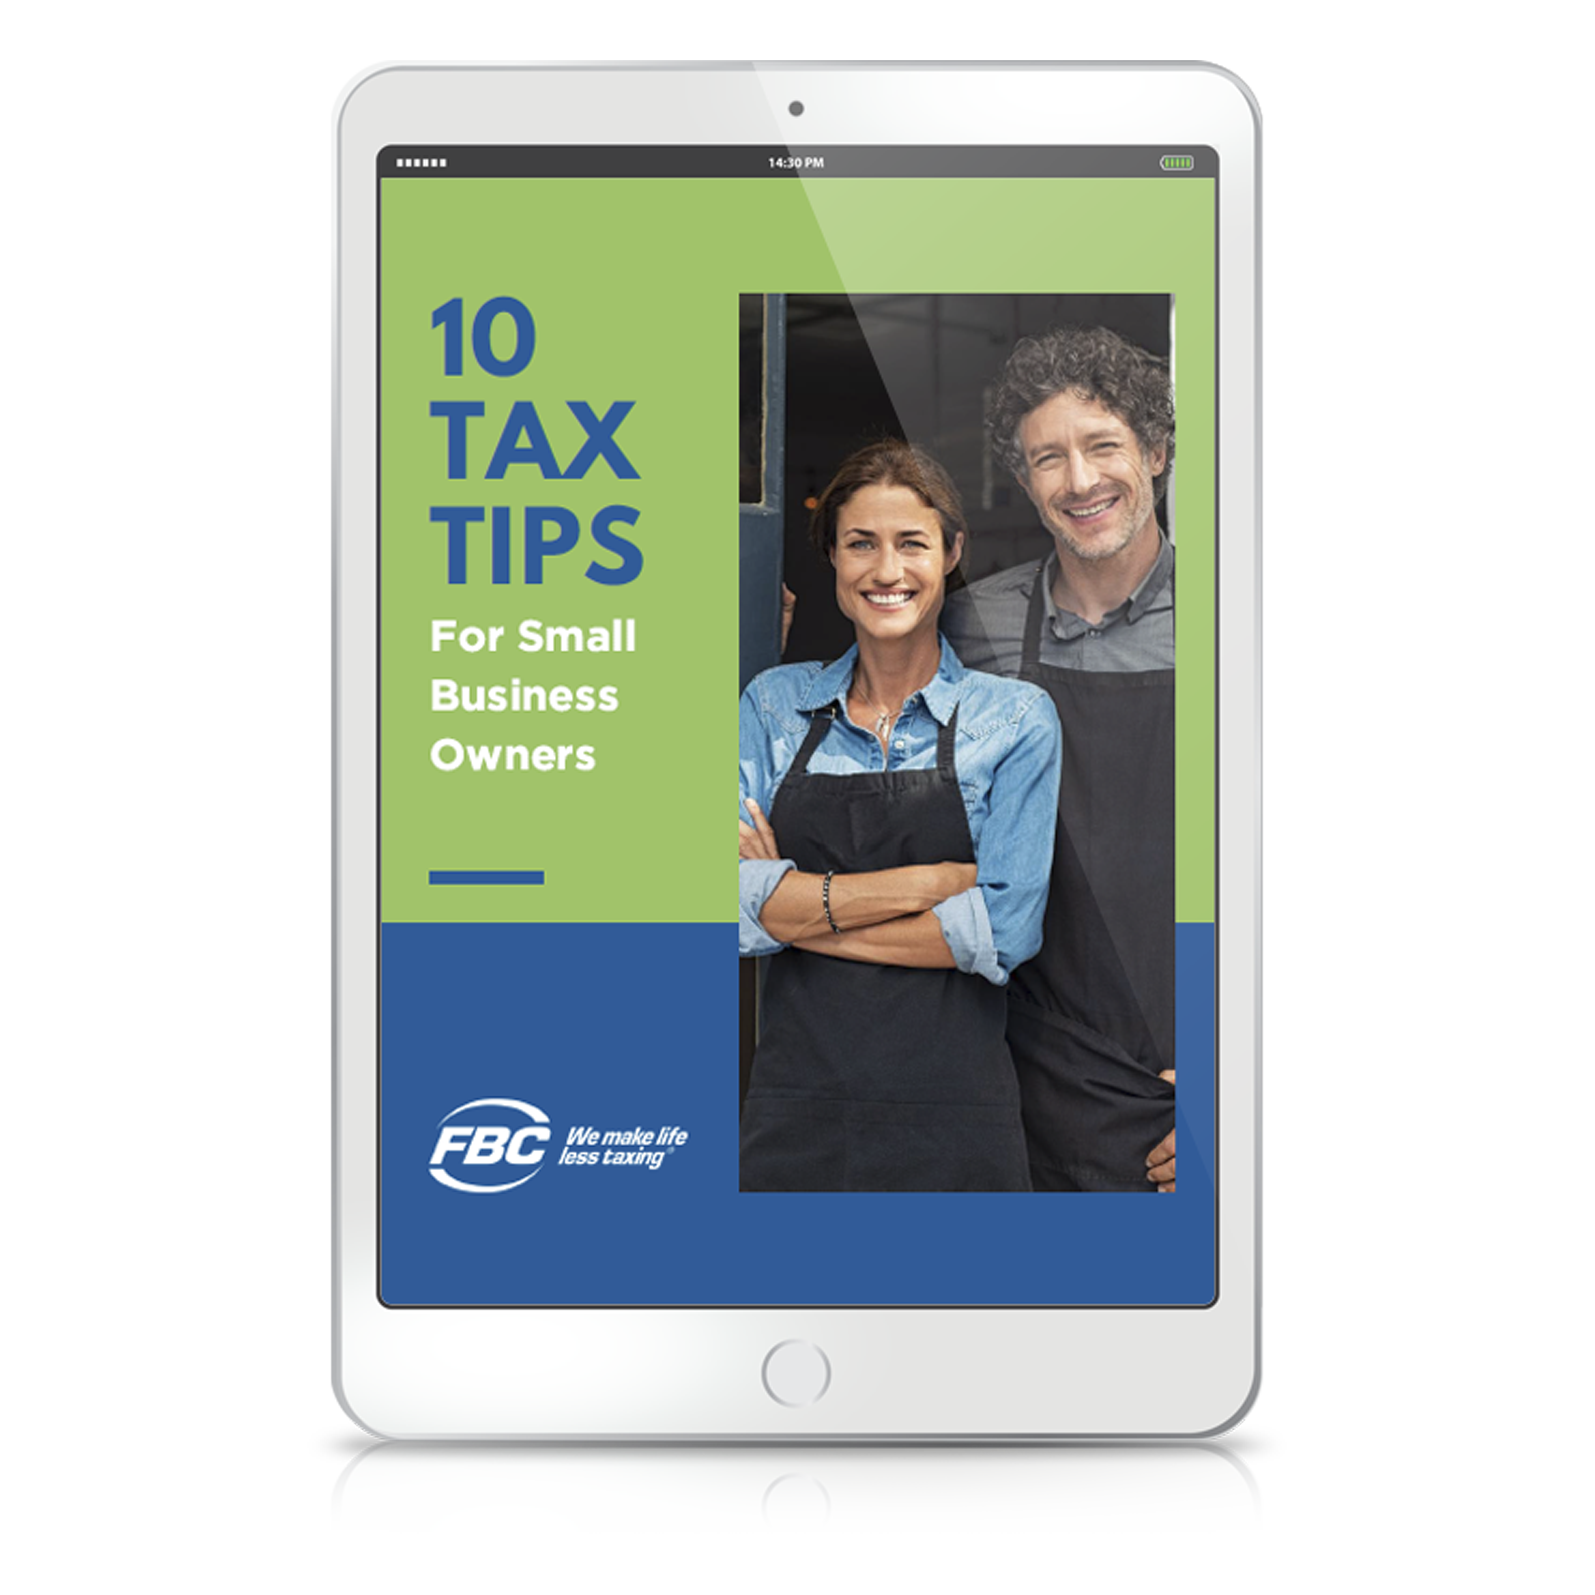 10 Tax Tips for Small Business Owners